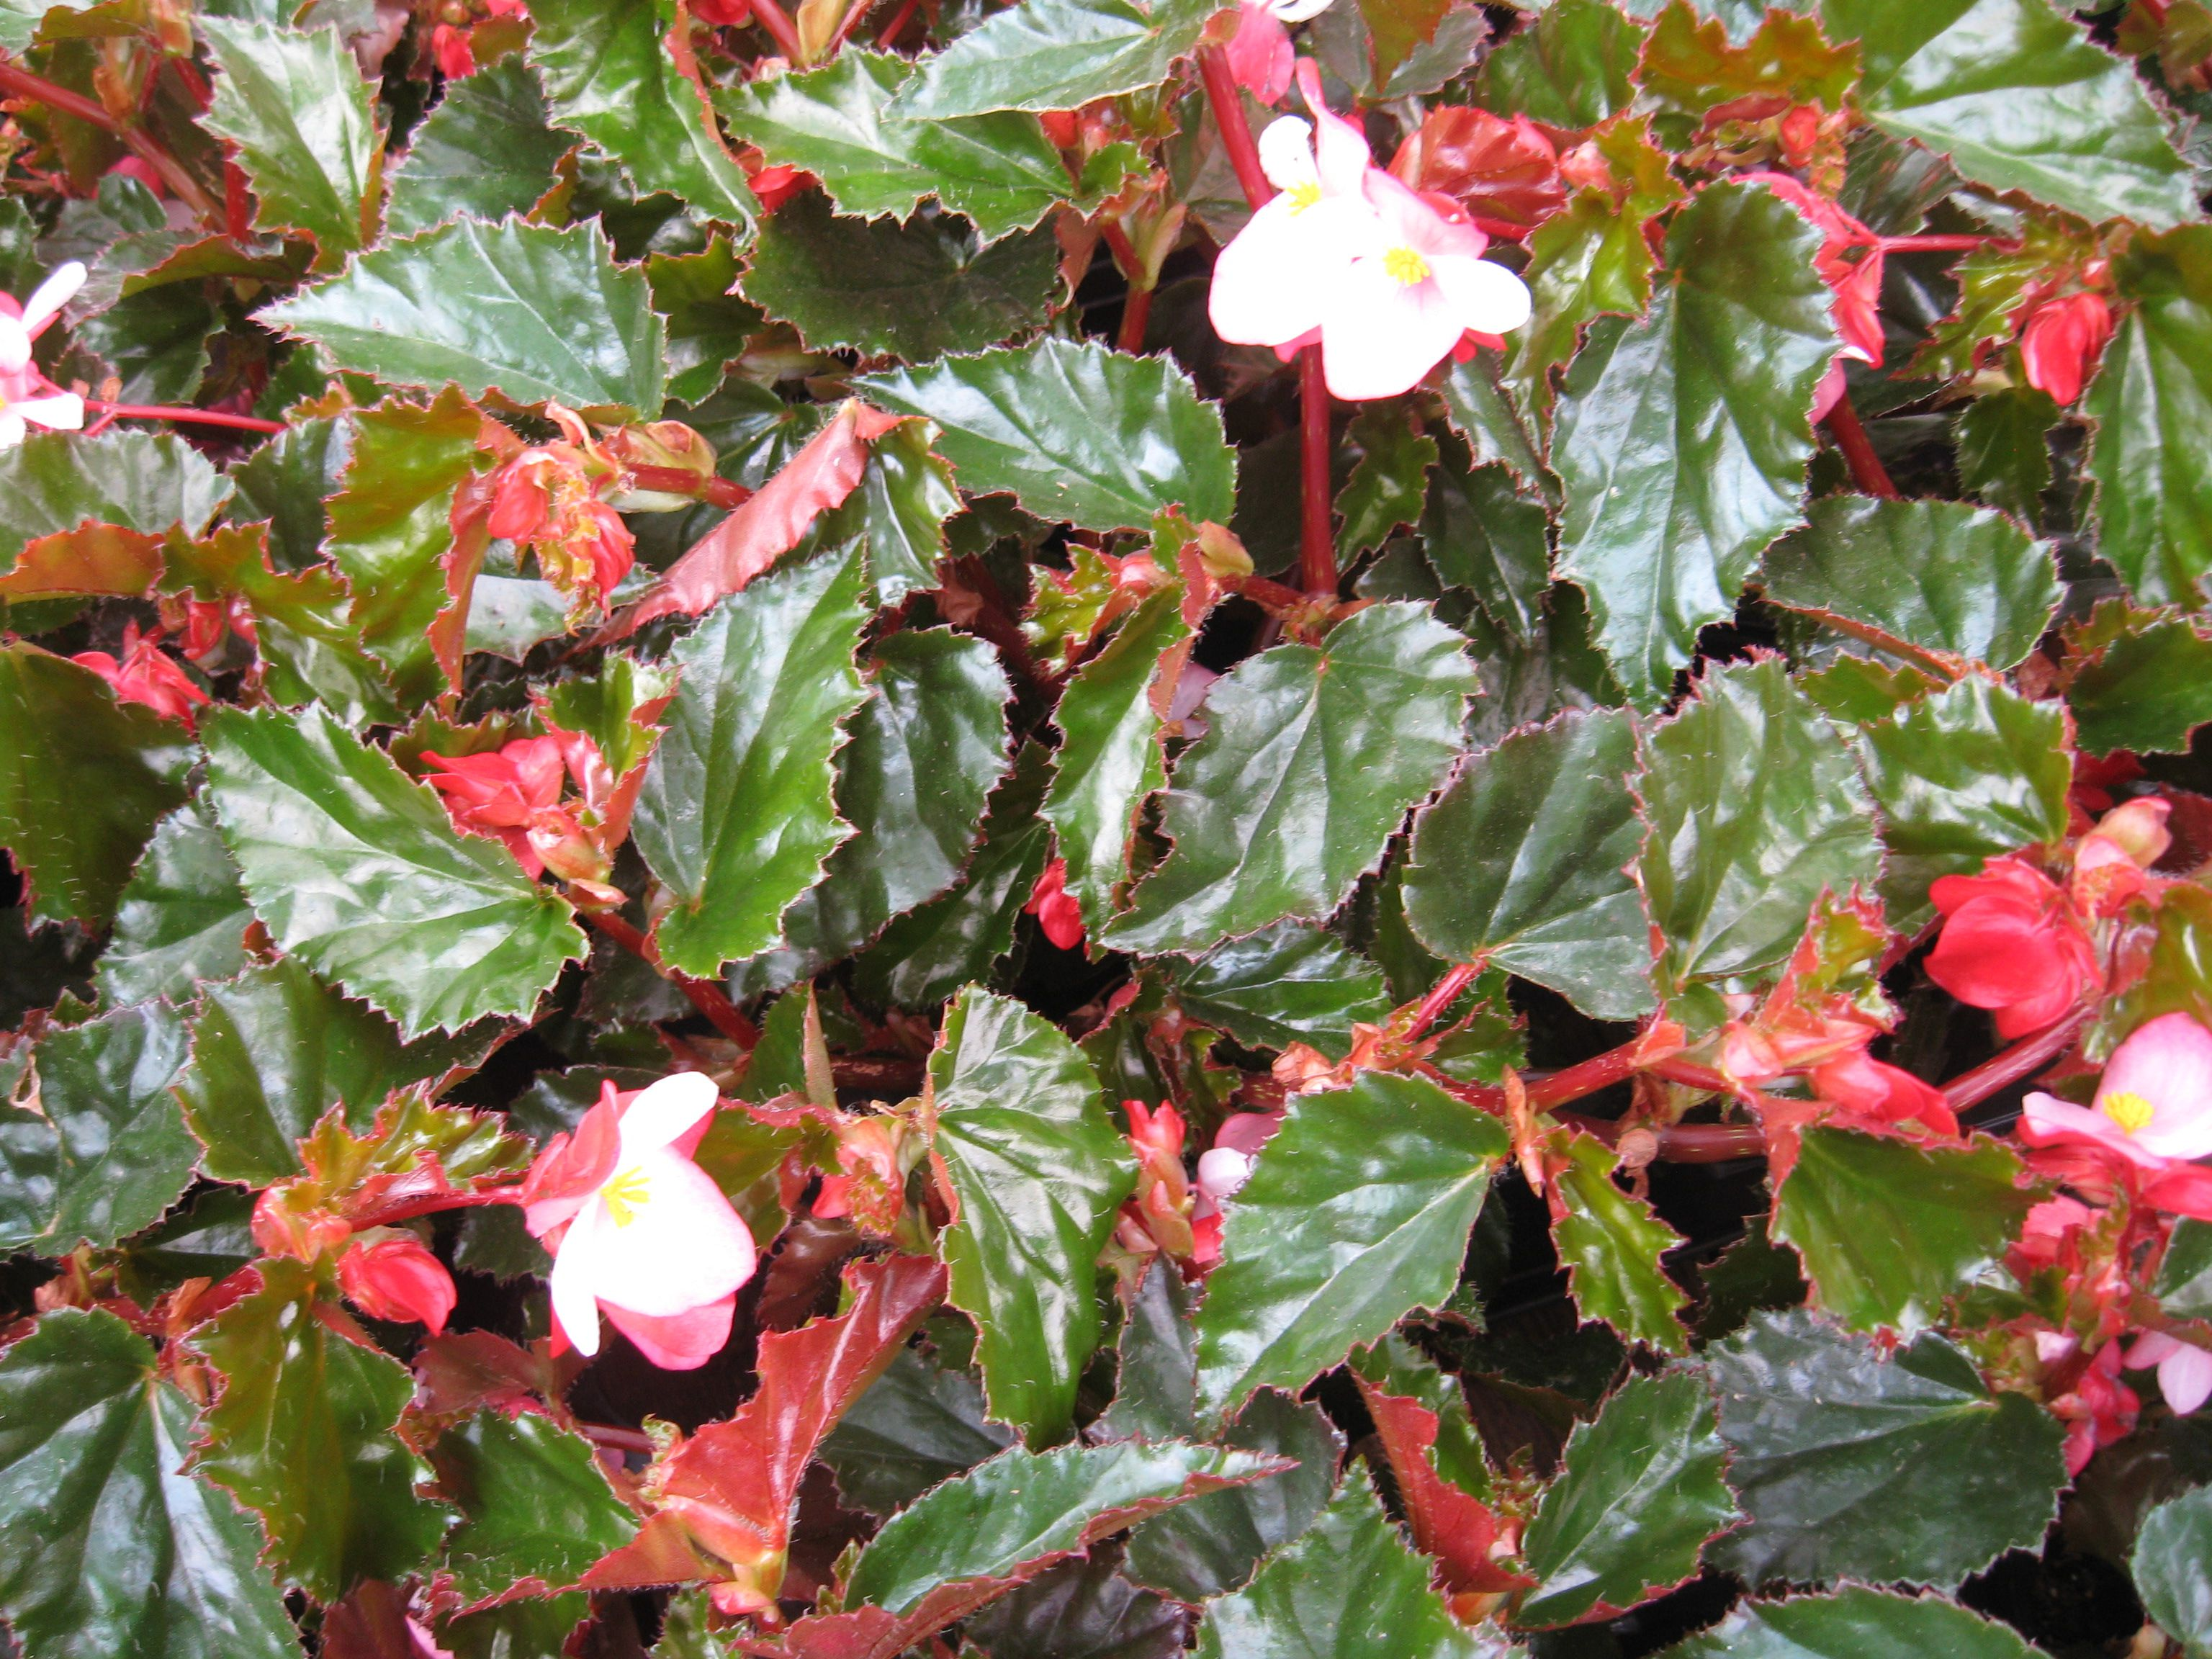 Sun begonia plants in a group.